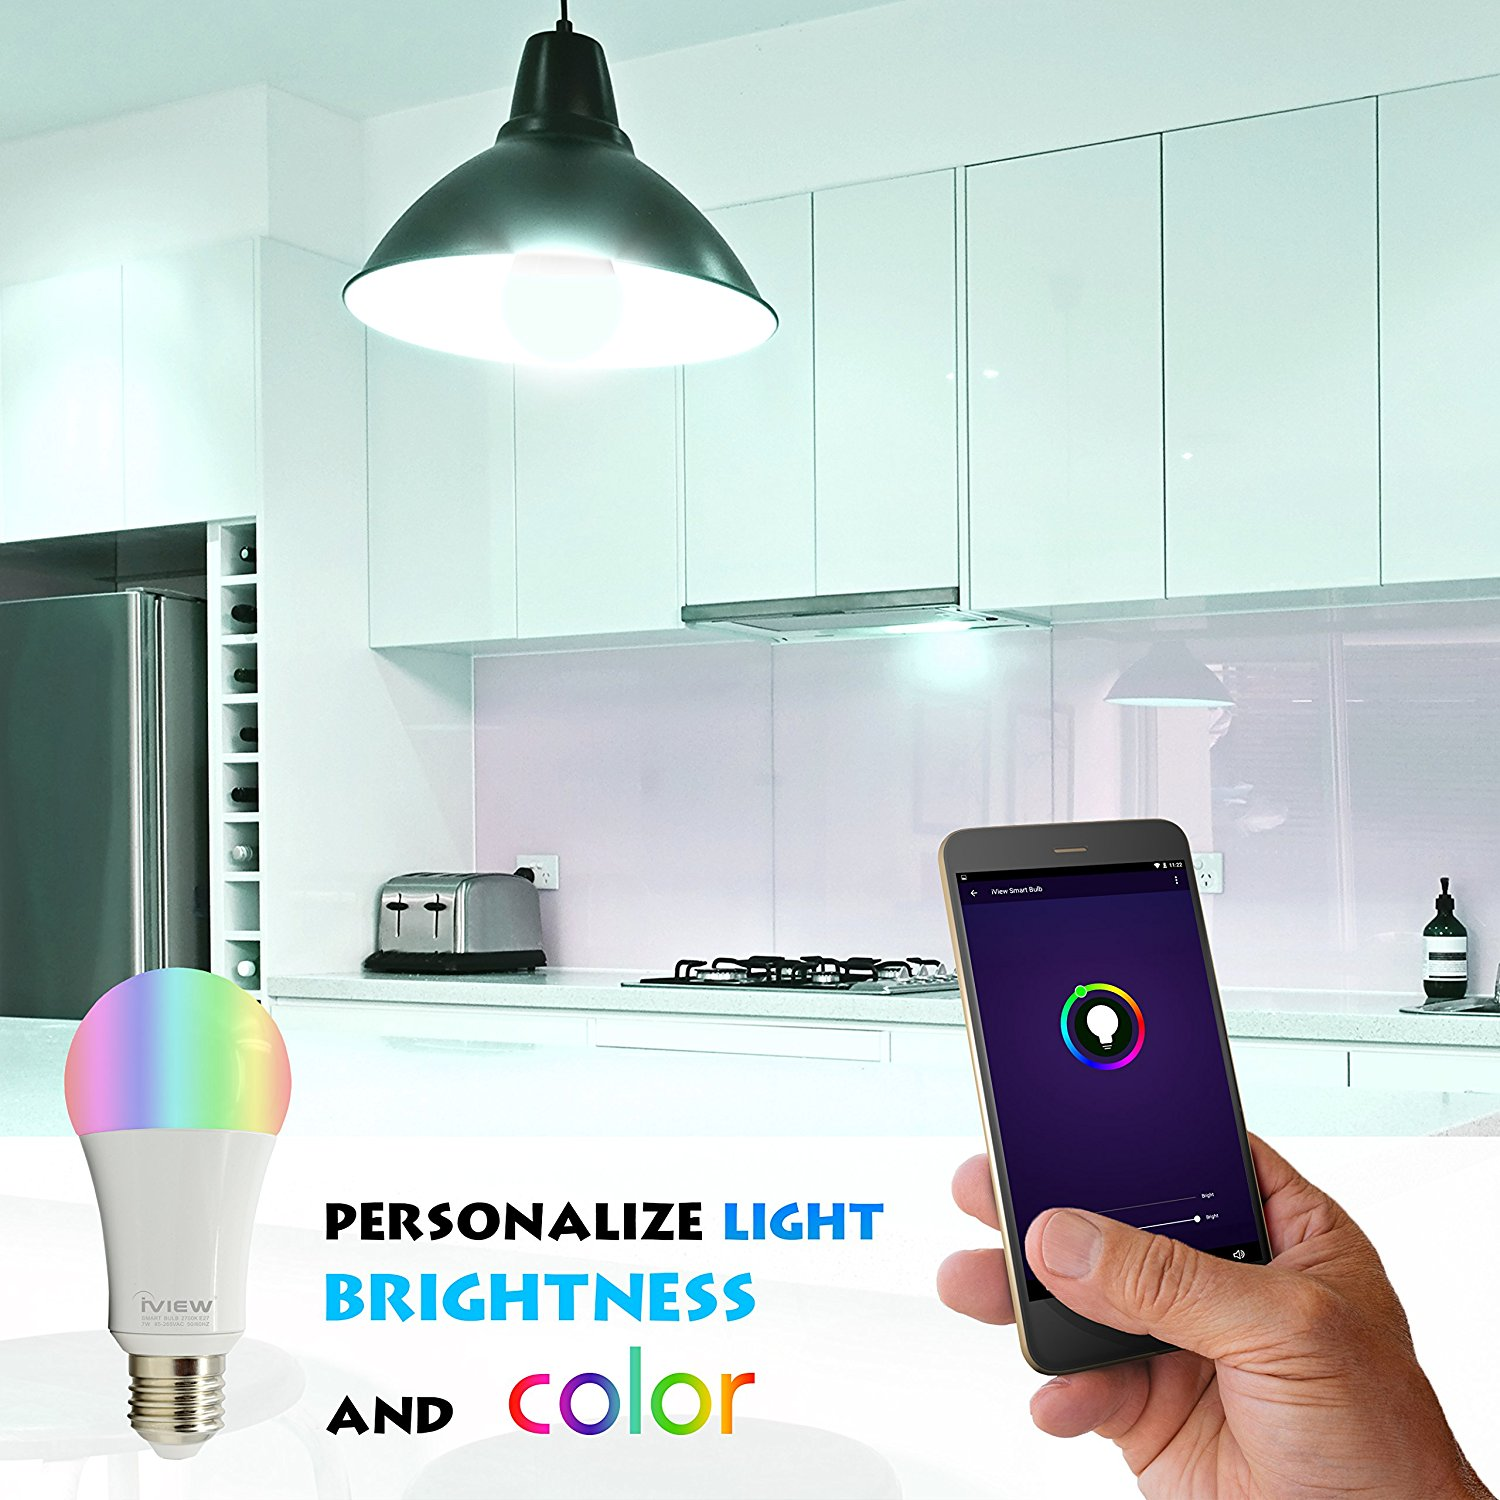 ISB600 Smart WiFi LED Bulb, Multi-Color, Dimmable, Repeater Free, Free APP Remote Control, Amazon Alexa and Google Assistant C